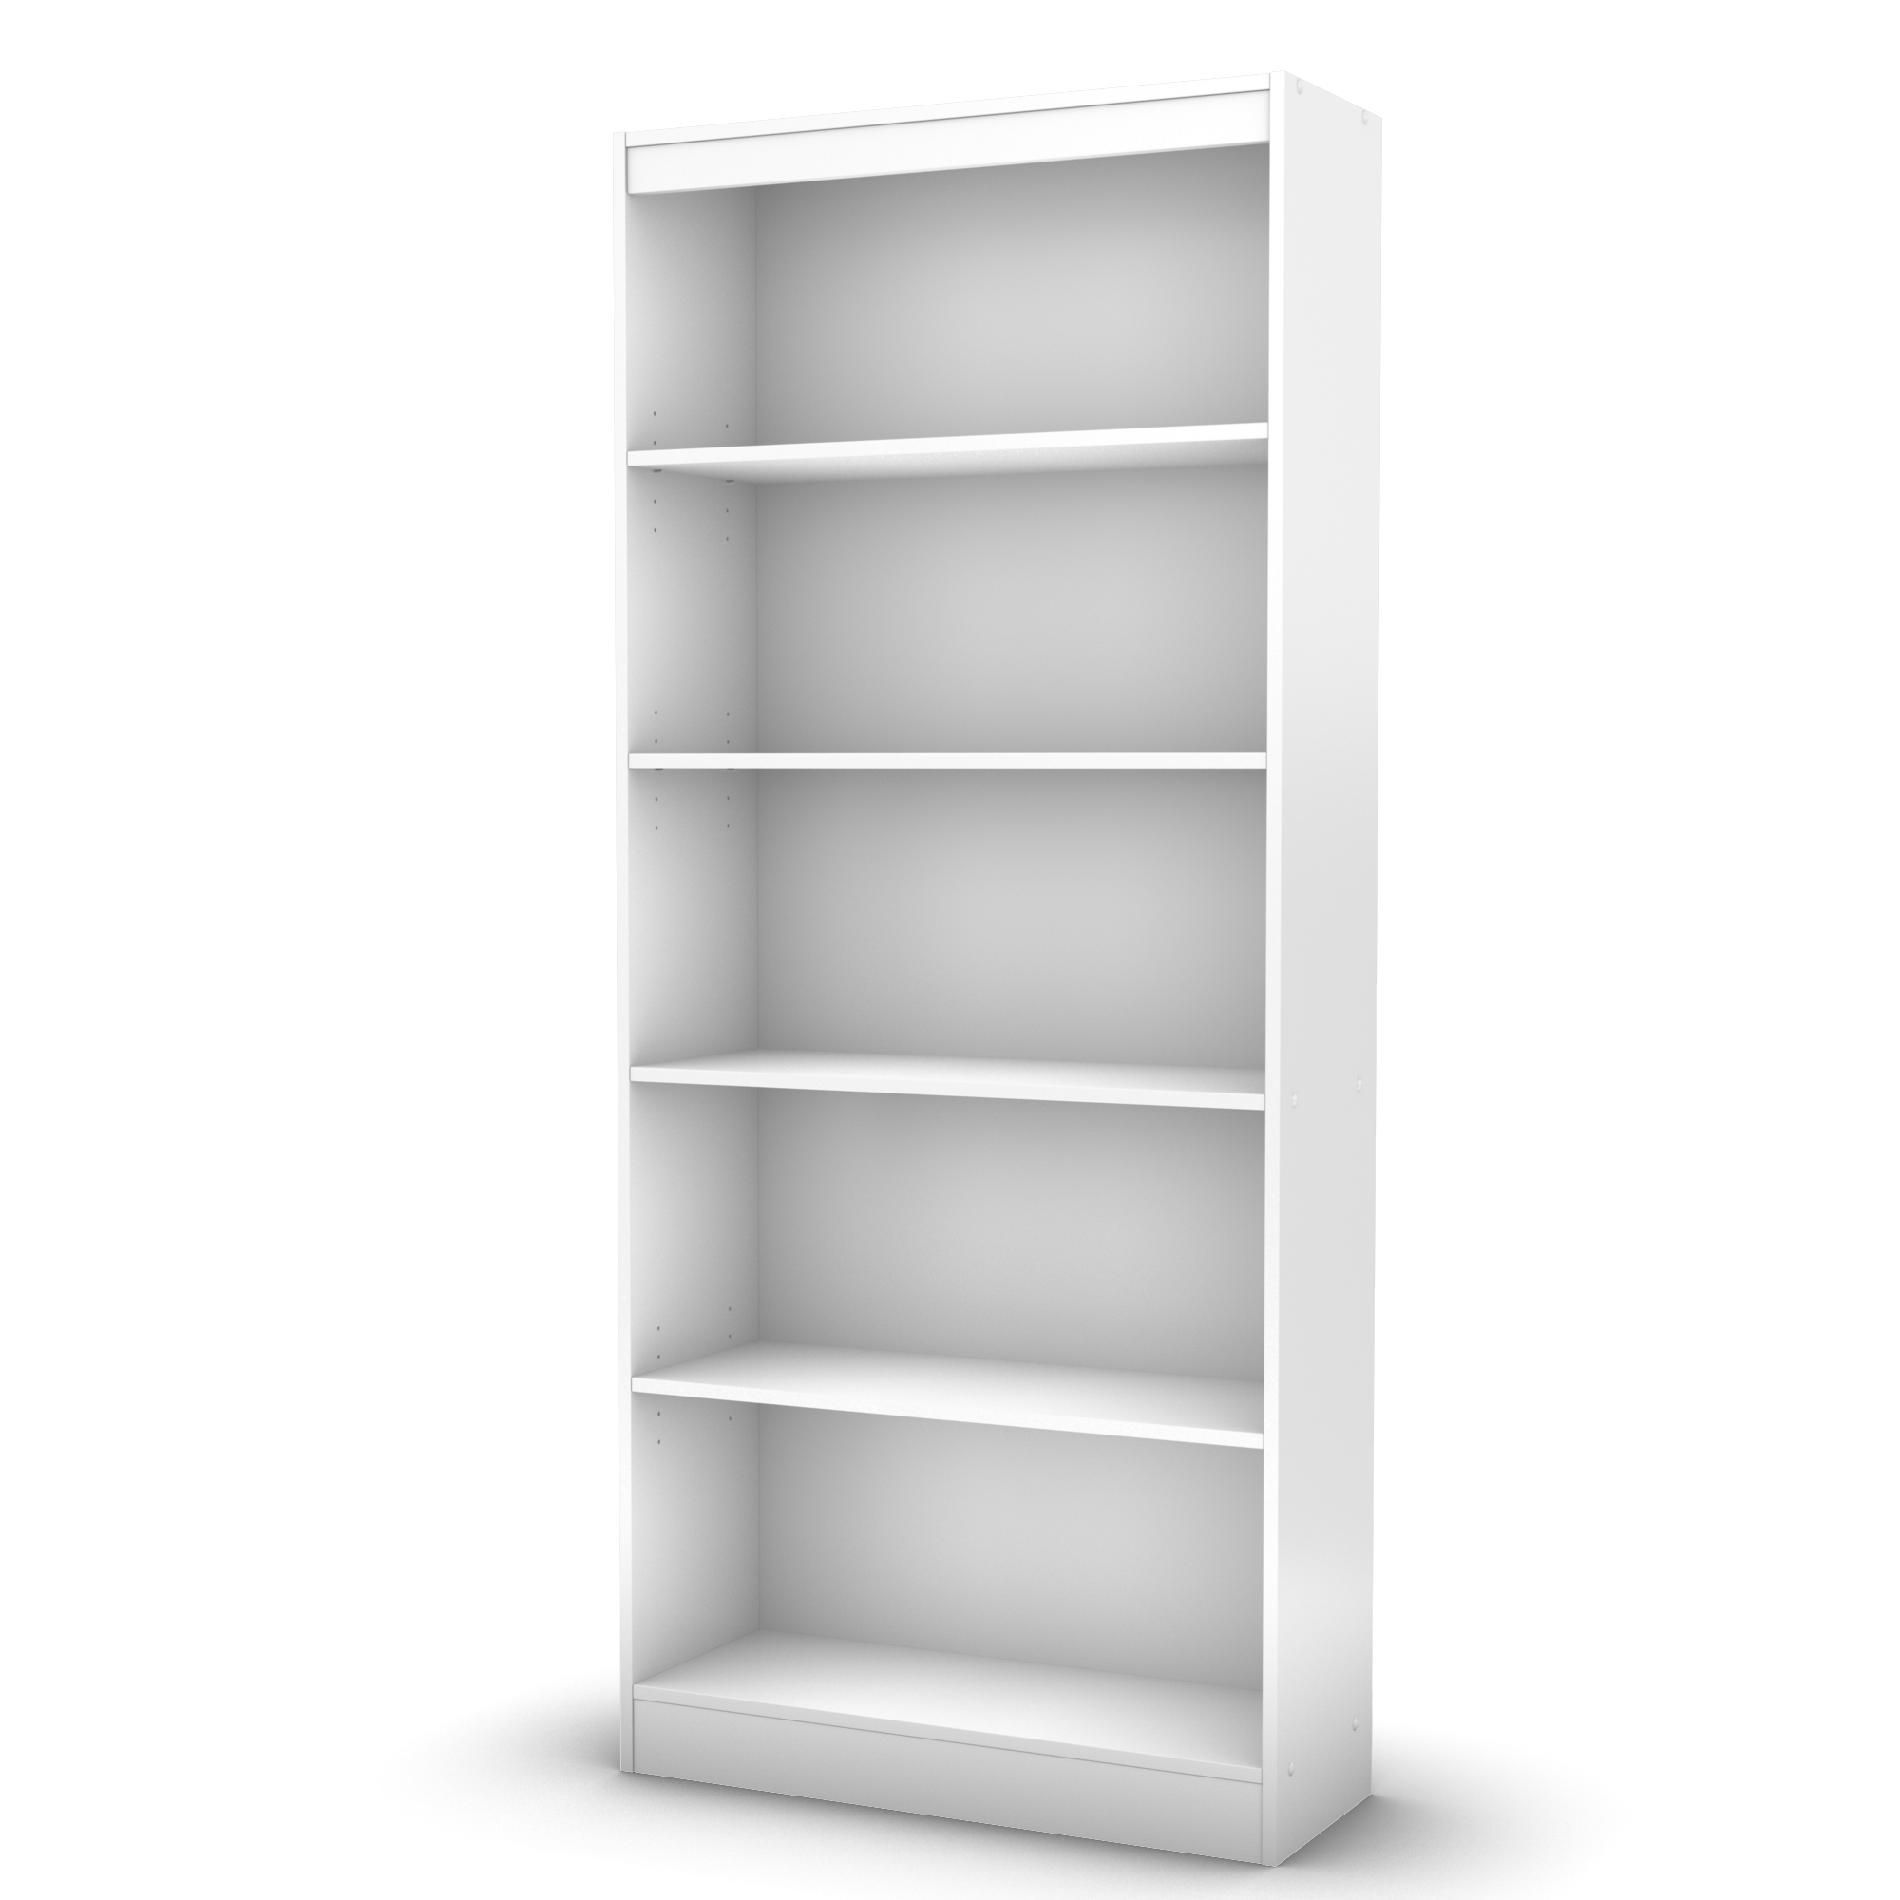 White 5 Shelf Bookcase Bring Home Affordable Style From Sears